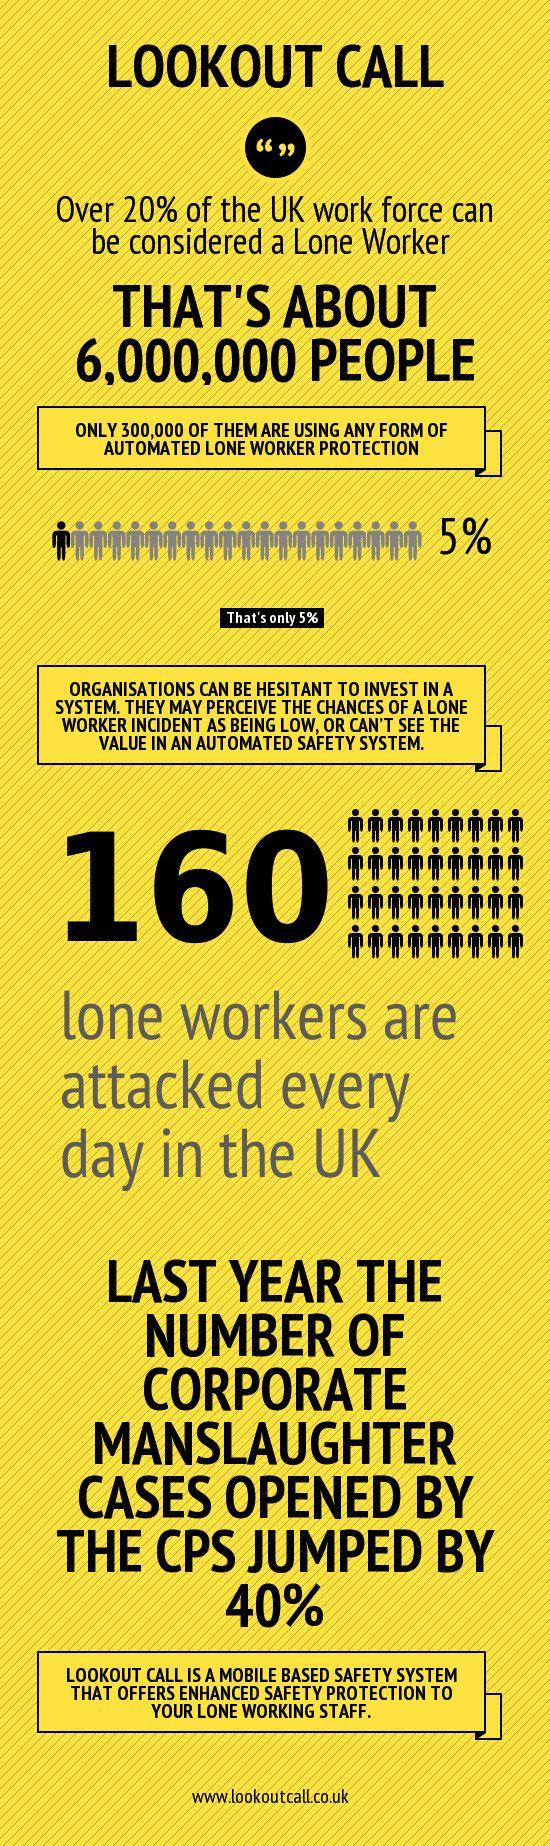 ***Lone Worker Safety  ***Lone worker safety is sometimes overlooked in organisations, lone workers can use a phone app to enhance personal safety protection    http://www.lookoutcall.co.uk/lone-working-the-facts/